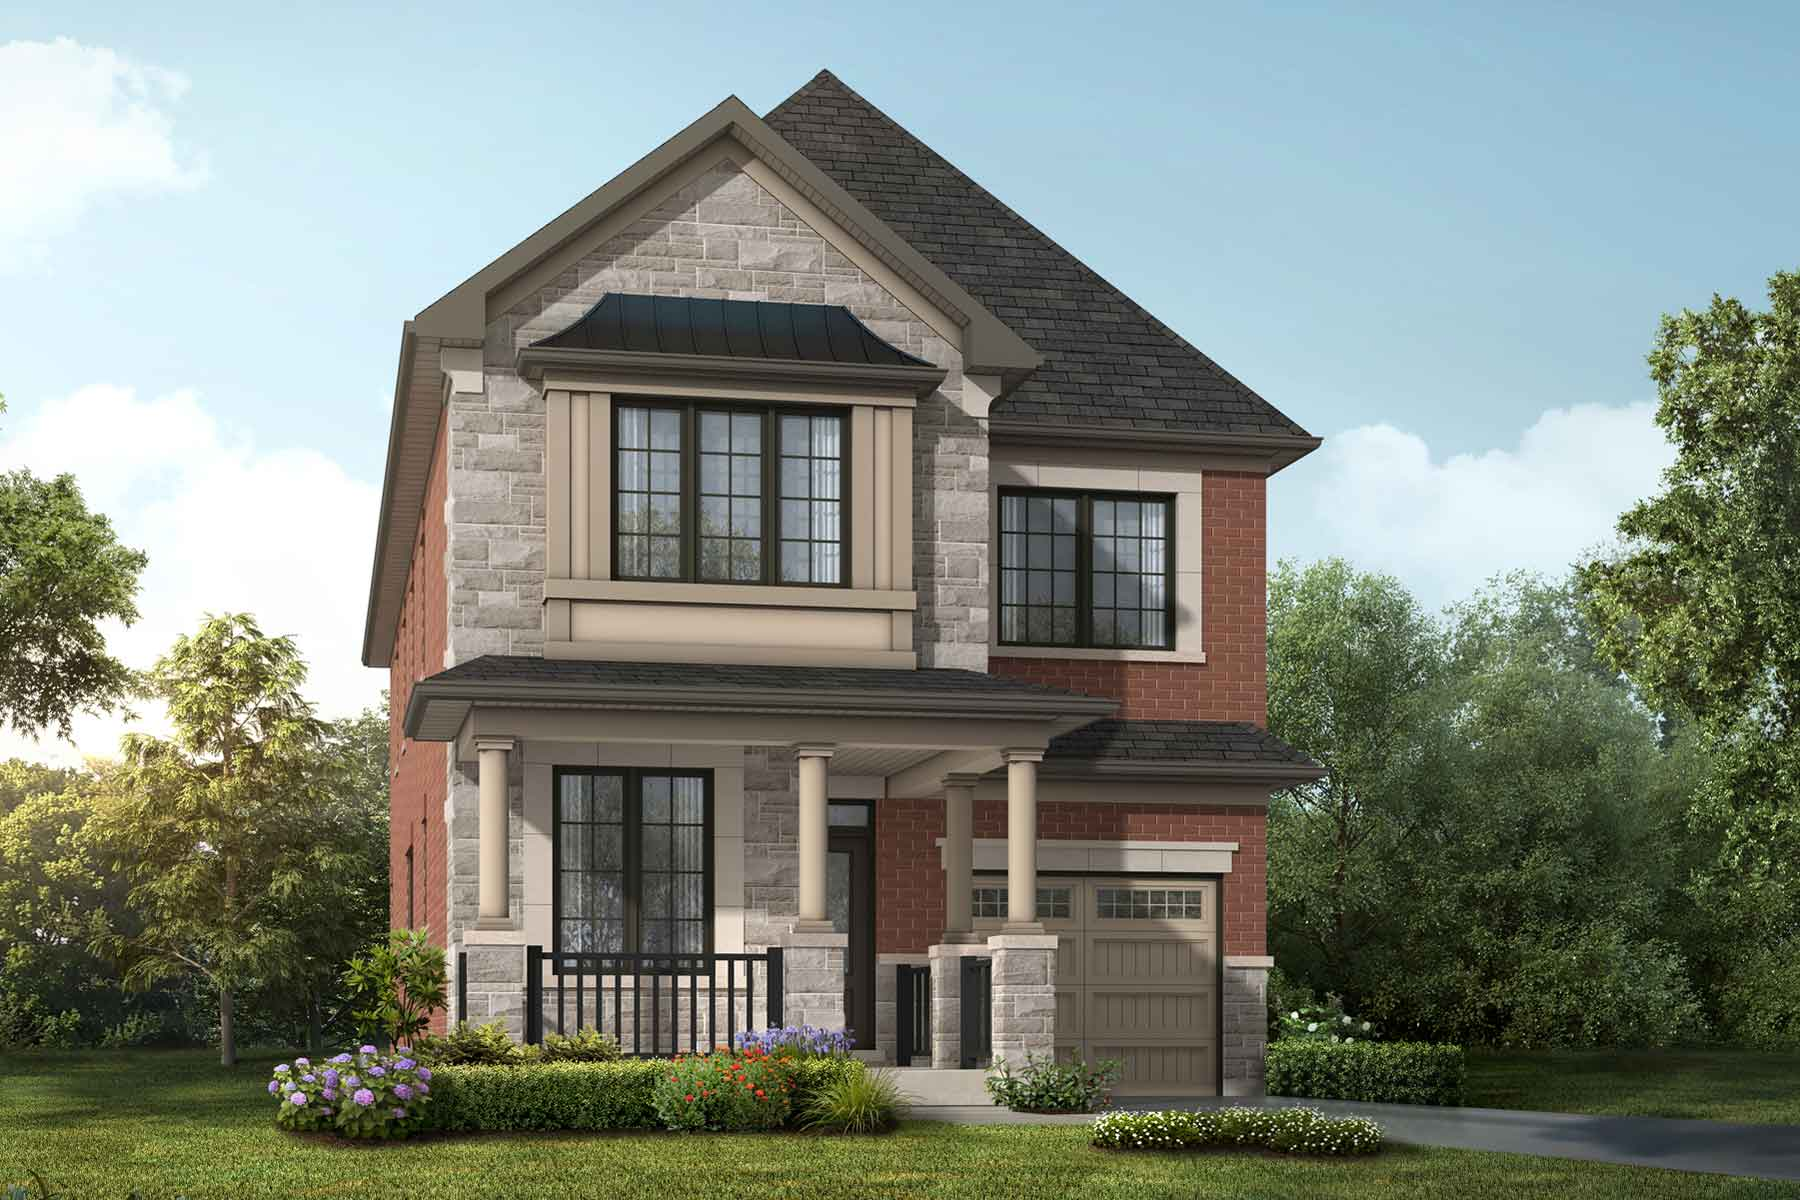 Sky Plan englishmanor_springwater_sky at Springwater in Markham Ontario by Mattamy Homes